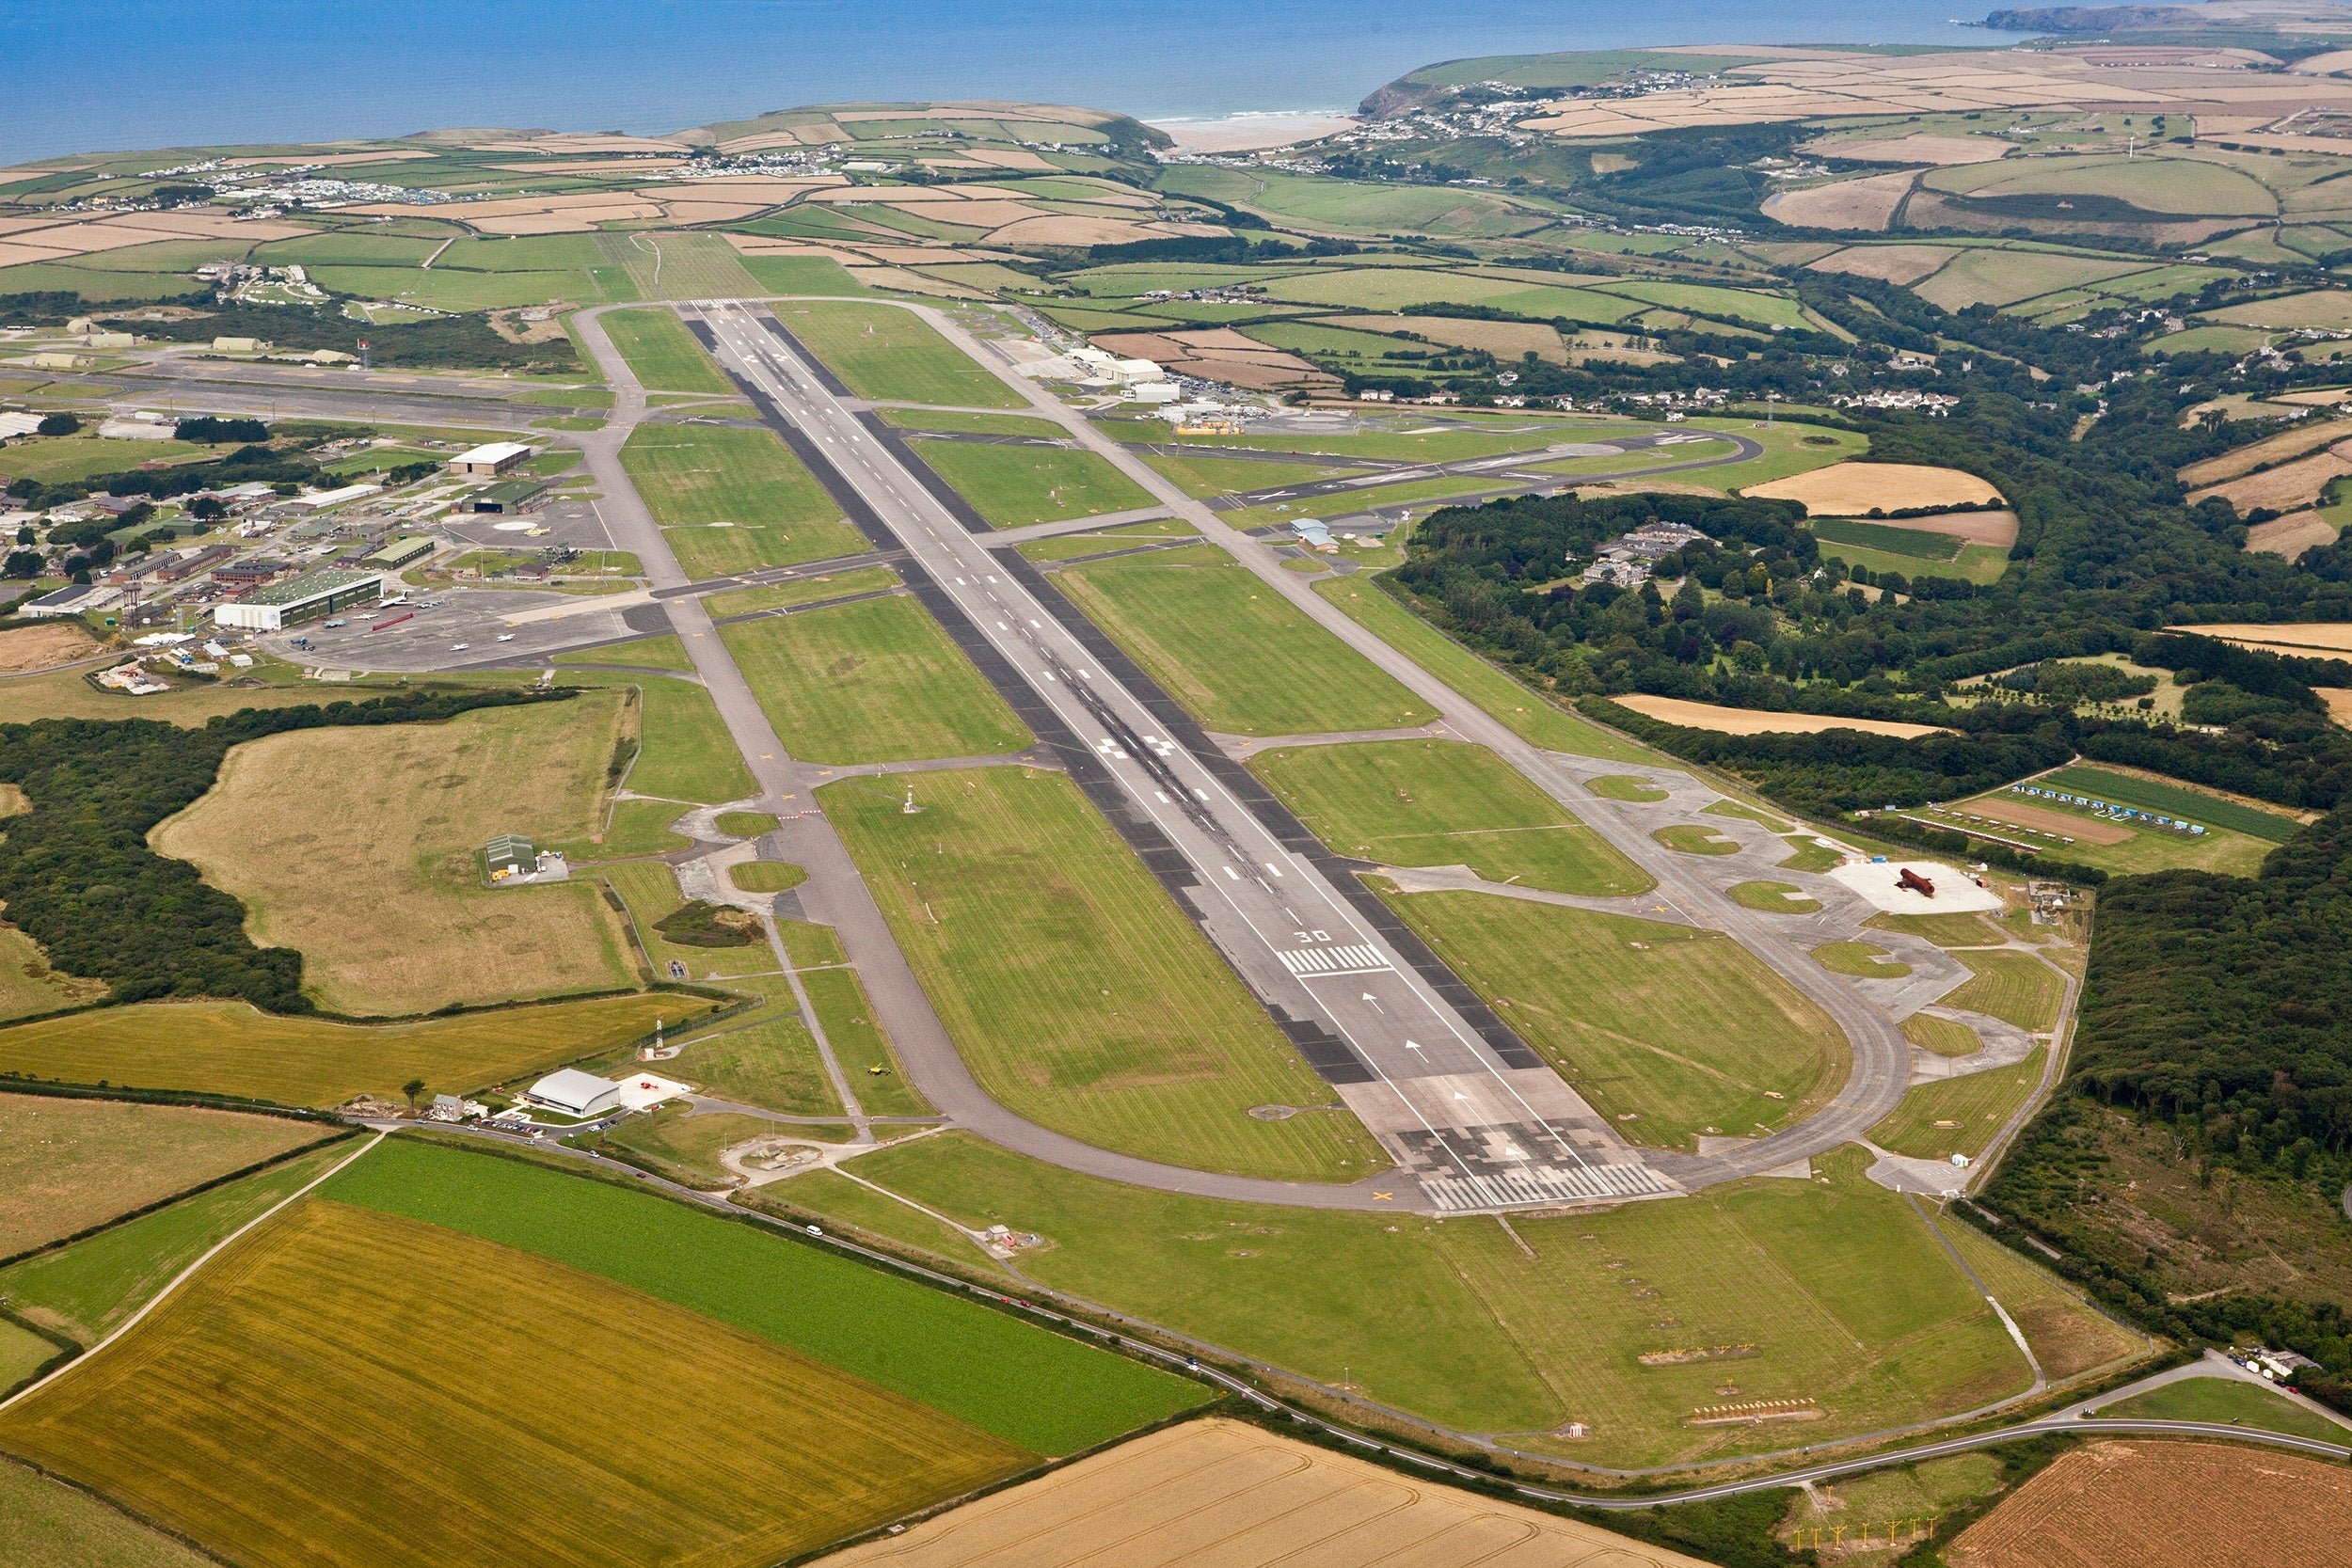 Flying with world leaders: How pilots land big aircraft into small airfields - The Points Guy UK